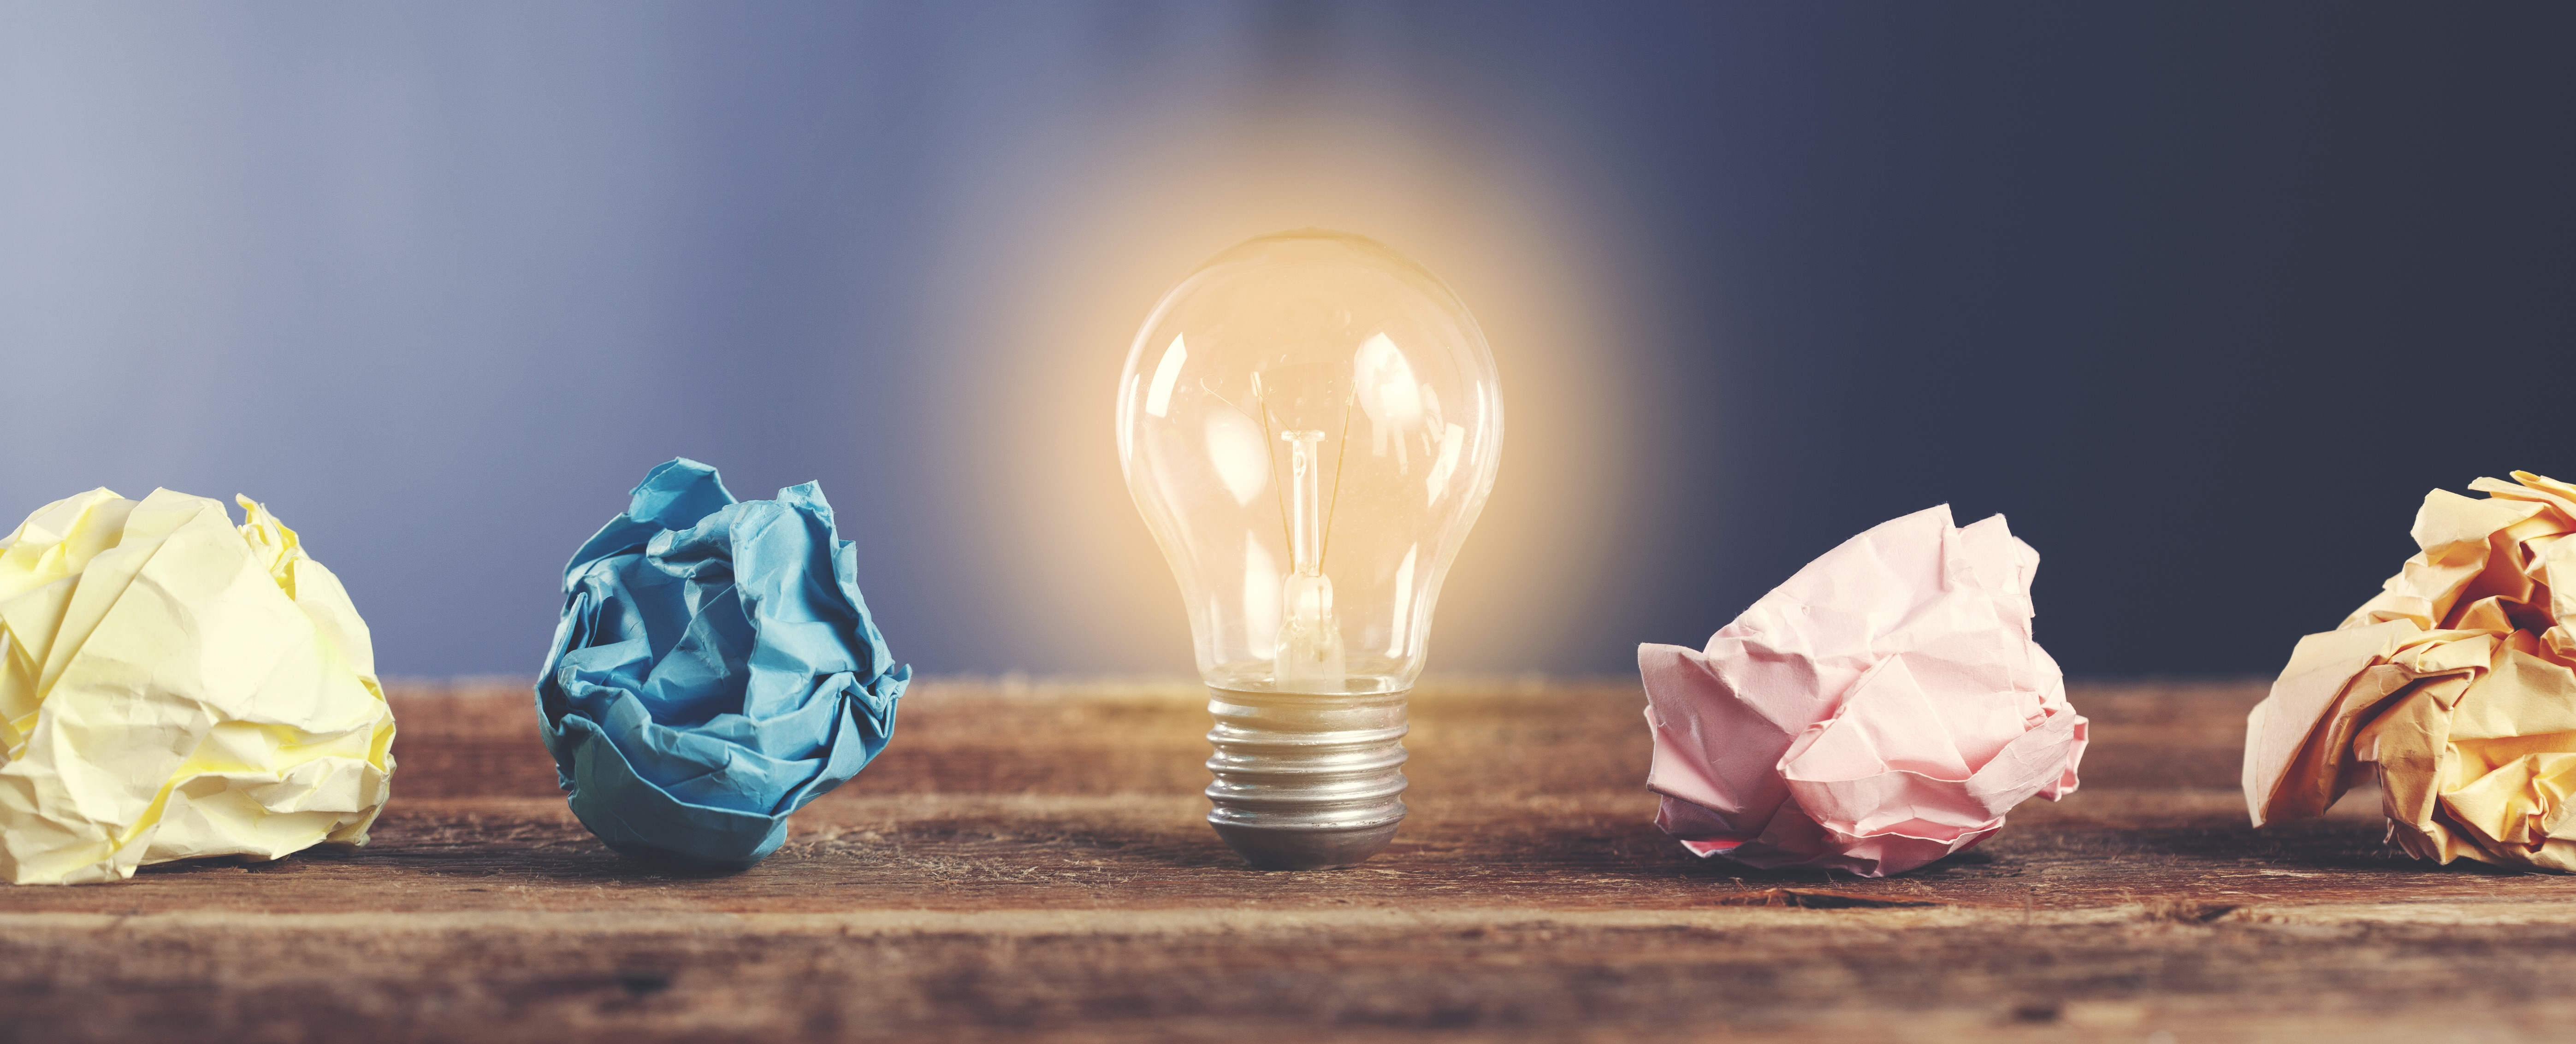 Lightbulb with crumpled paper on wooden desk